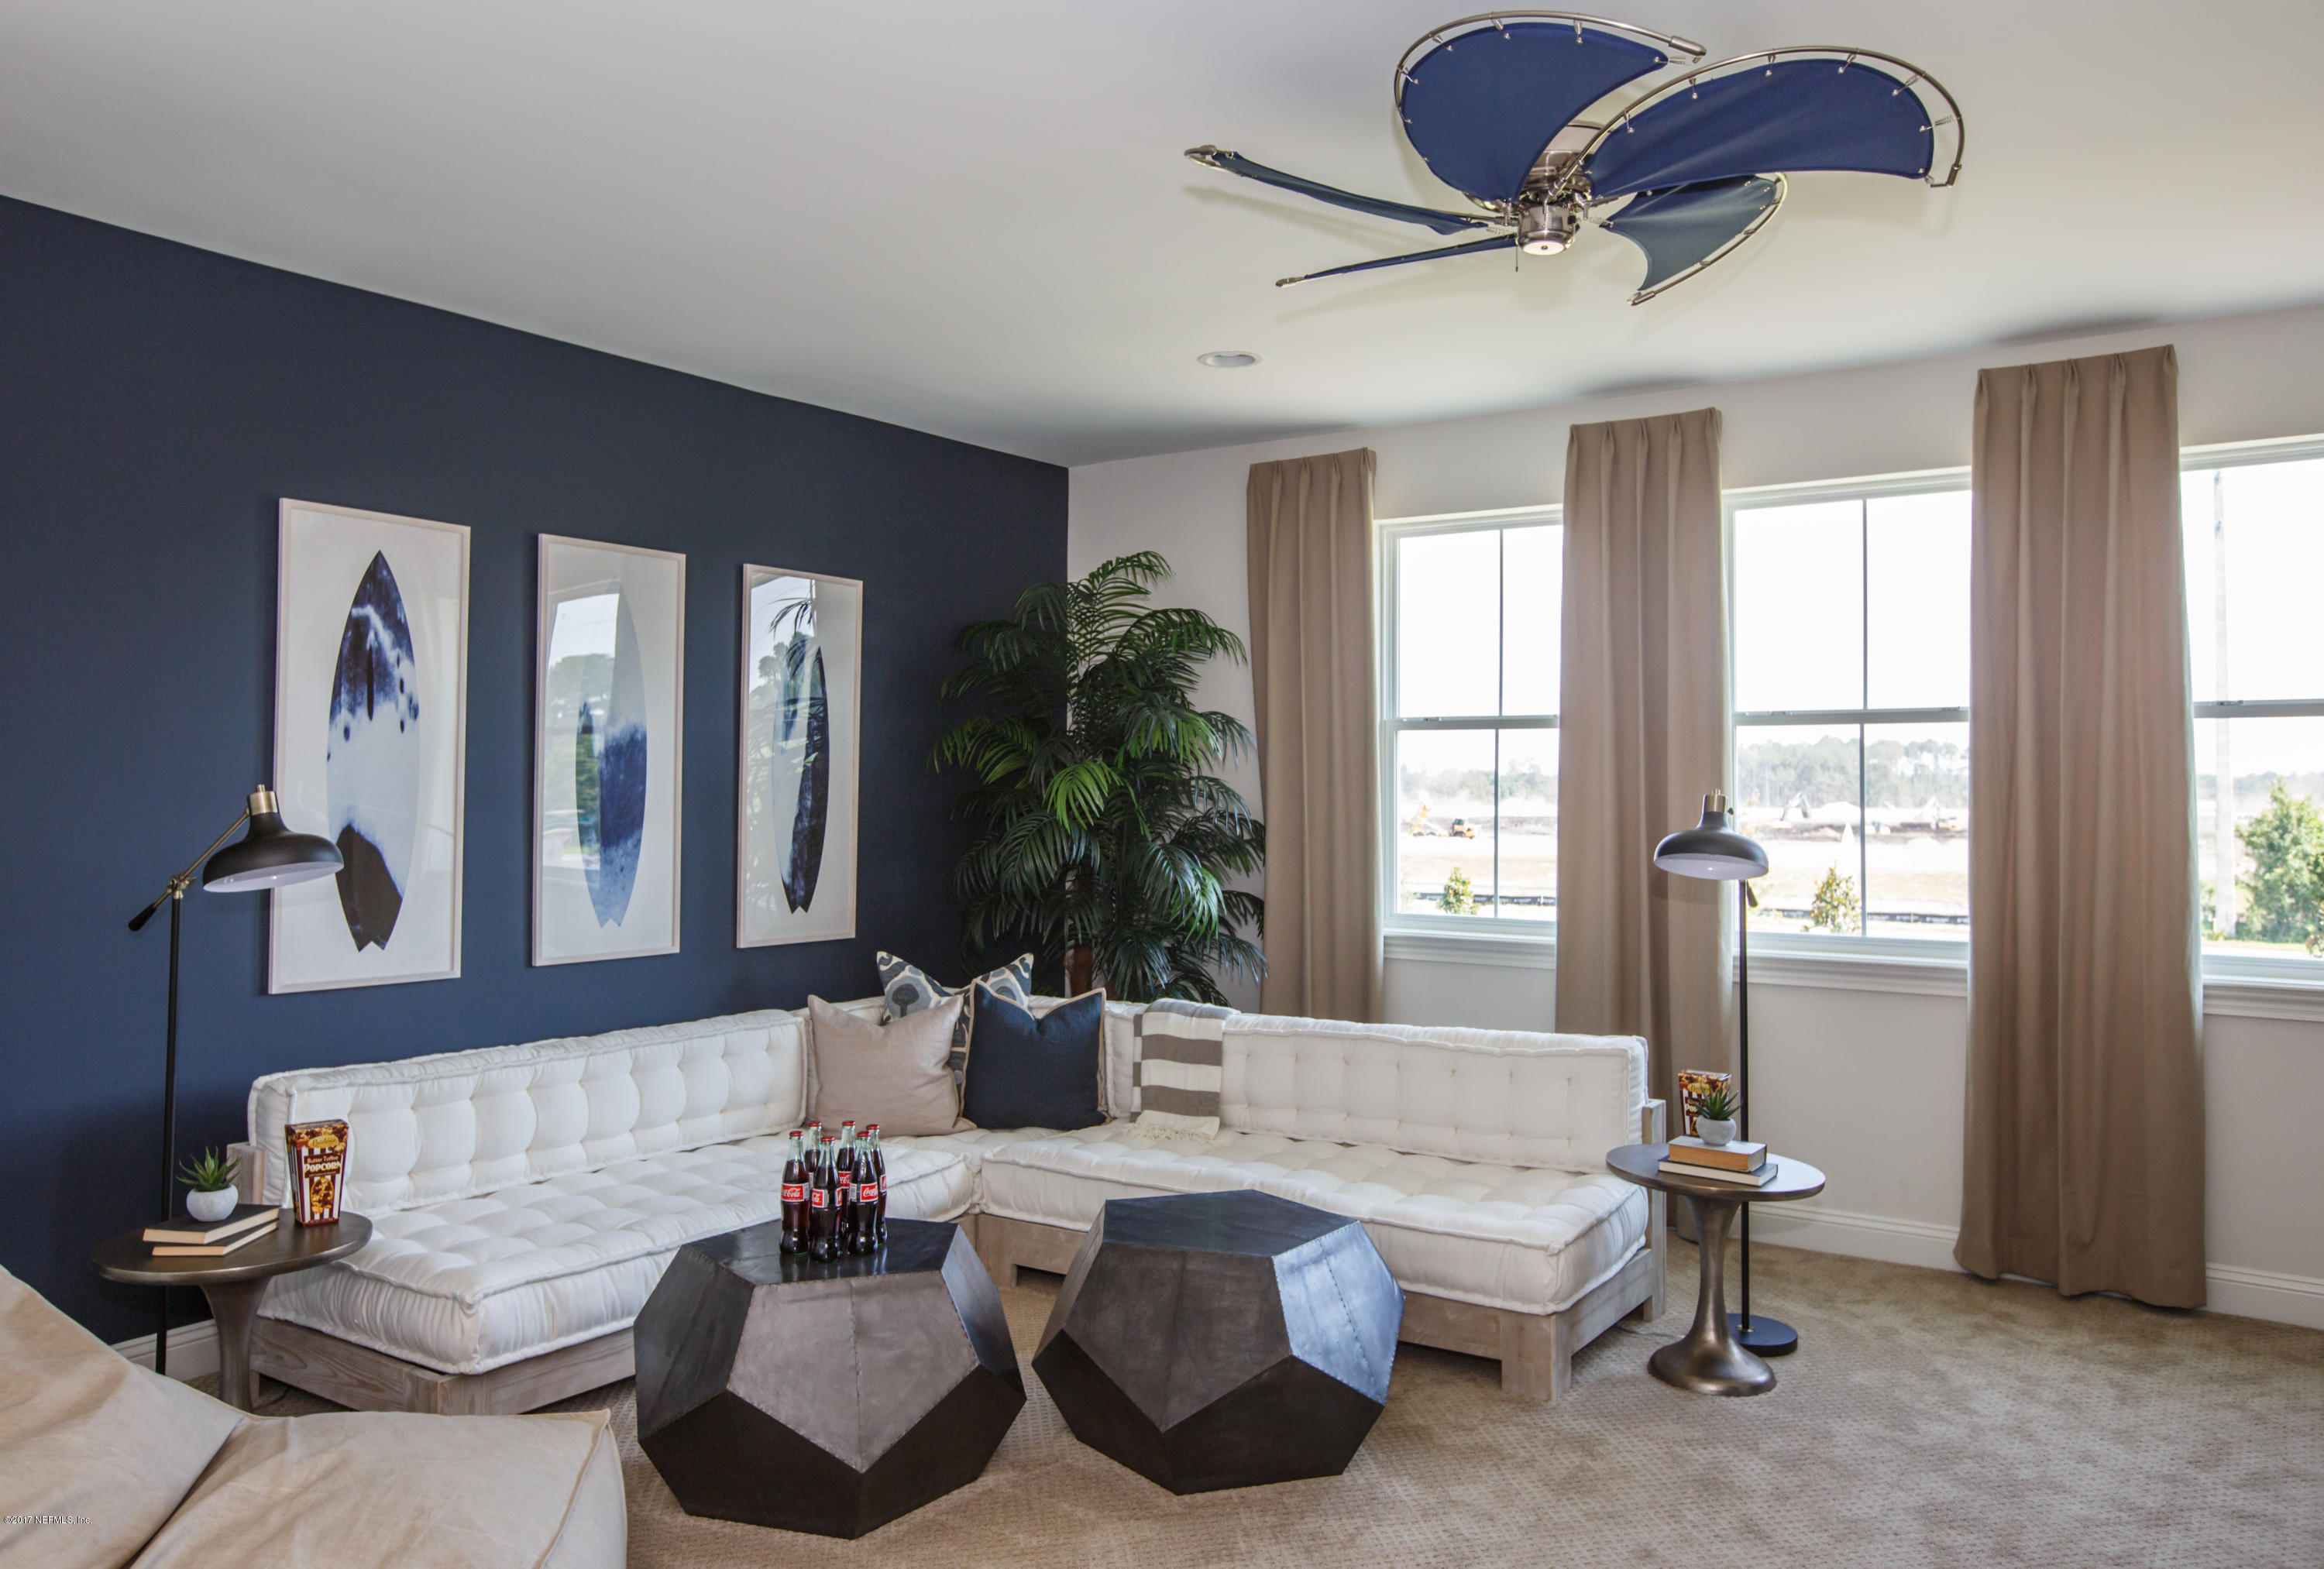 174A COSTA BLANCA, ST AUGUSTINE, FLORIDA 32095, 5 Bedrooms Bedrooms, ,5 BathroomsBathrooms,Residential - single family,For sale,COSTA BLANCA,907947